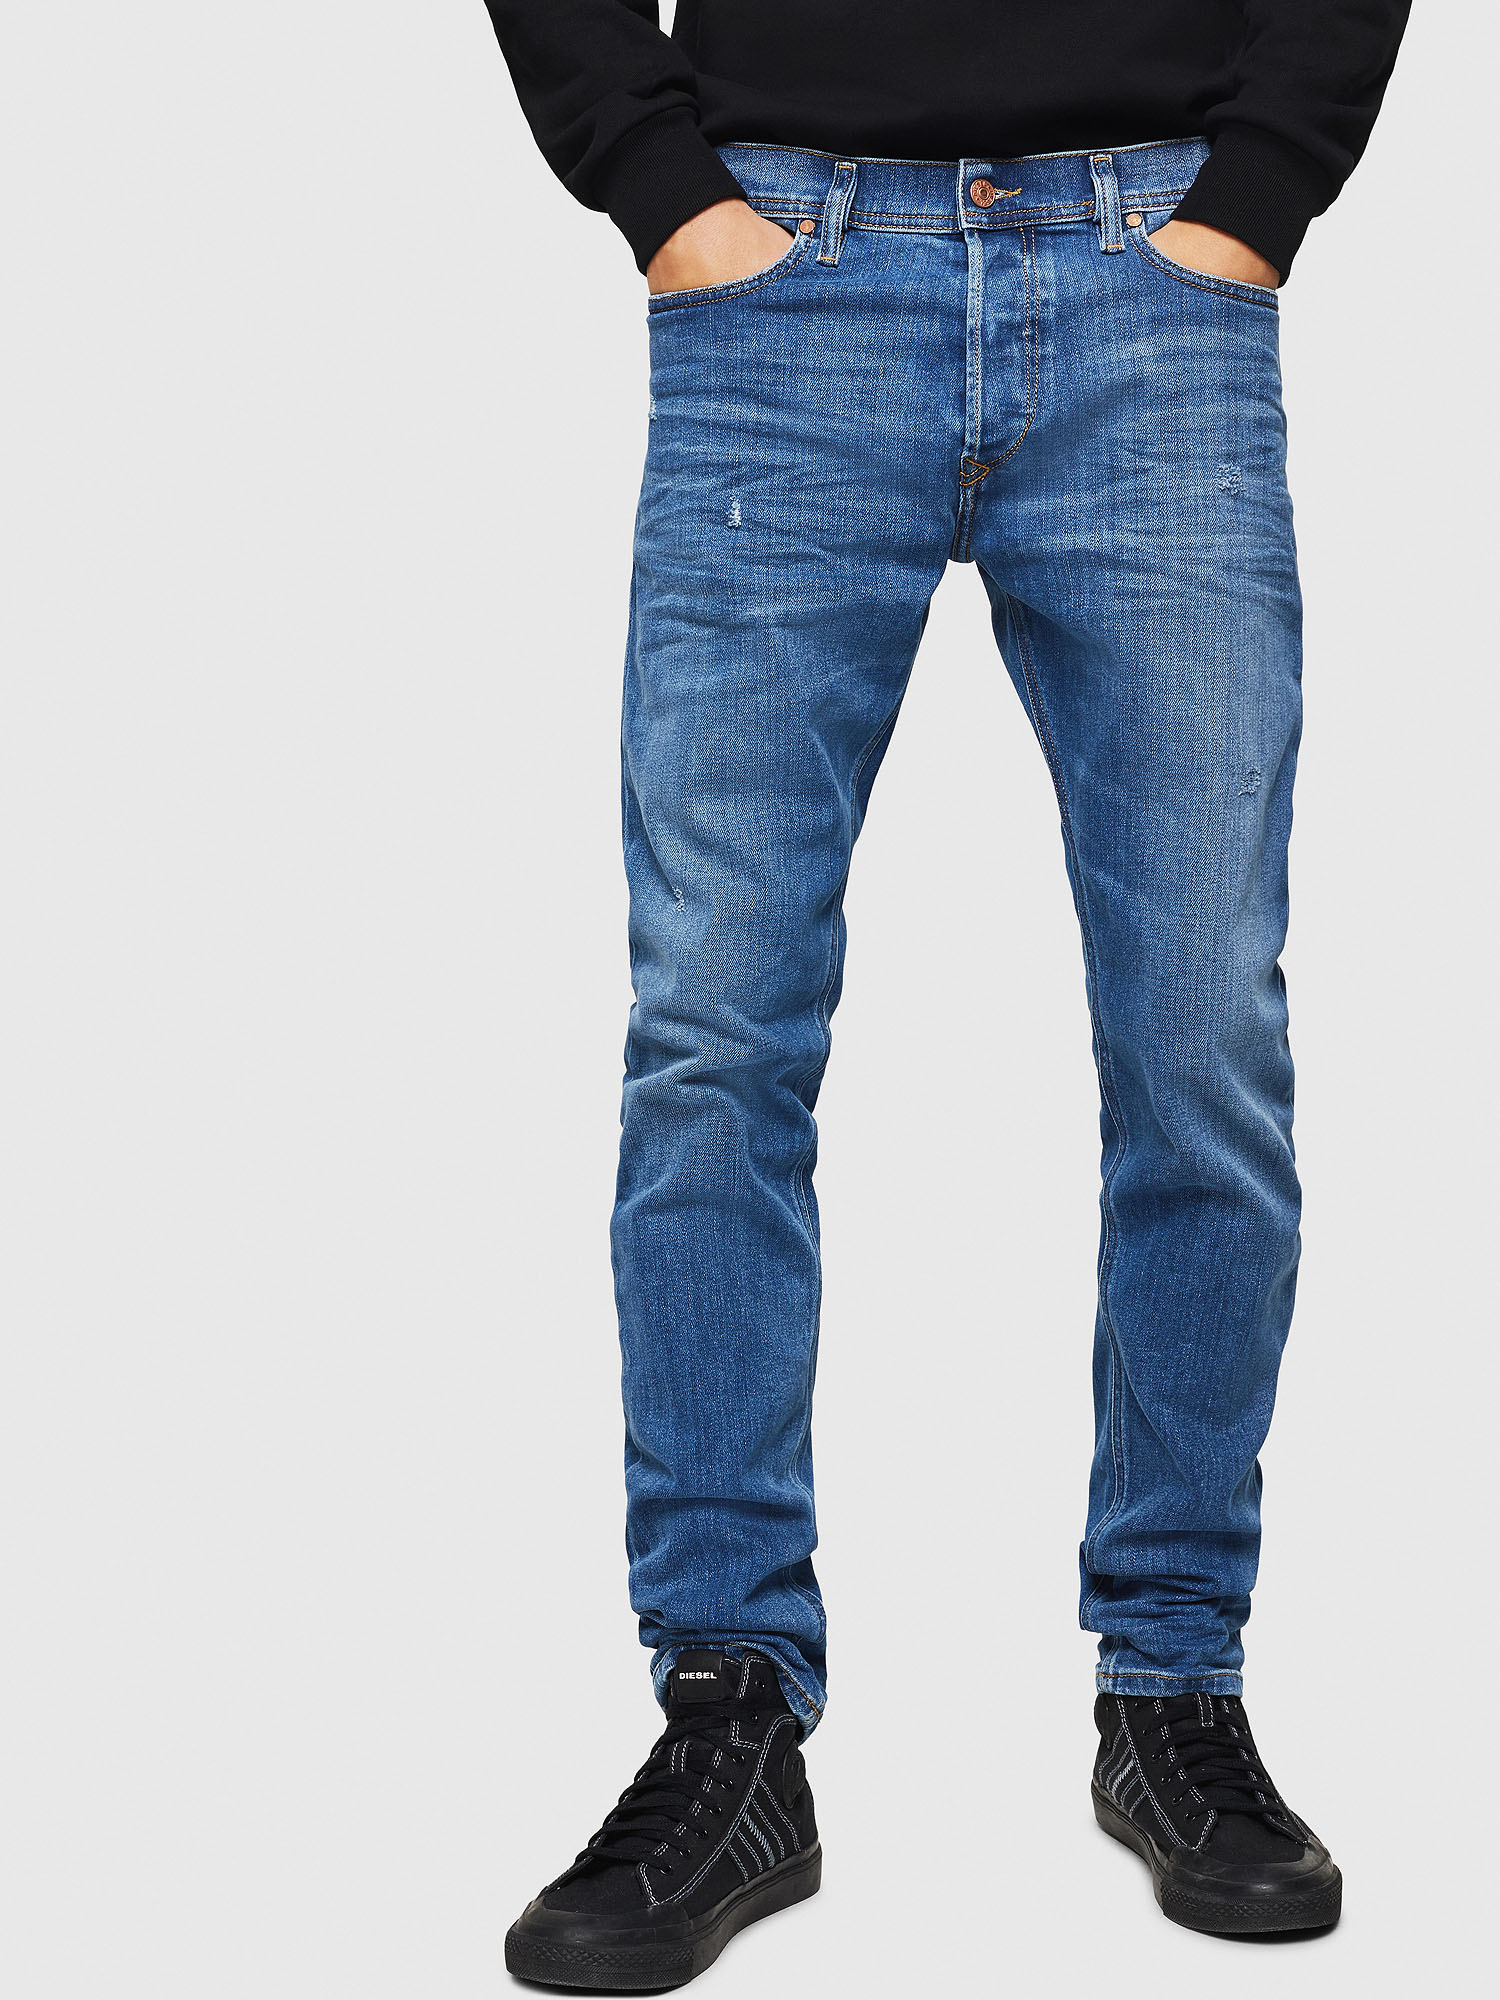 Diesel - Tepphar 083AX,  - Jeans - Image 1